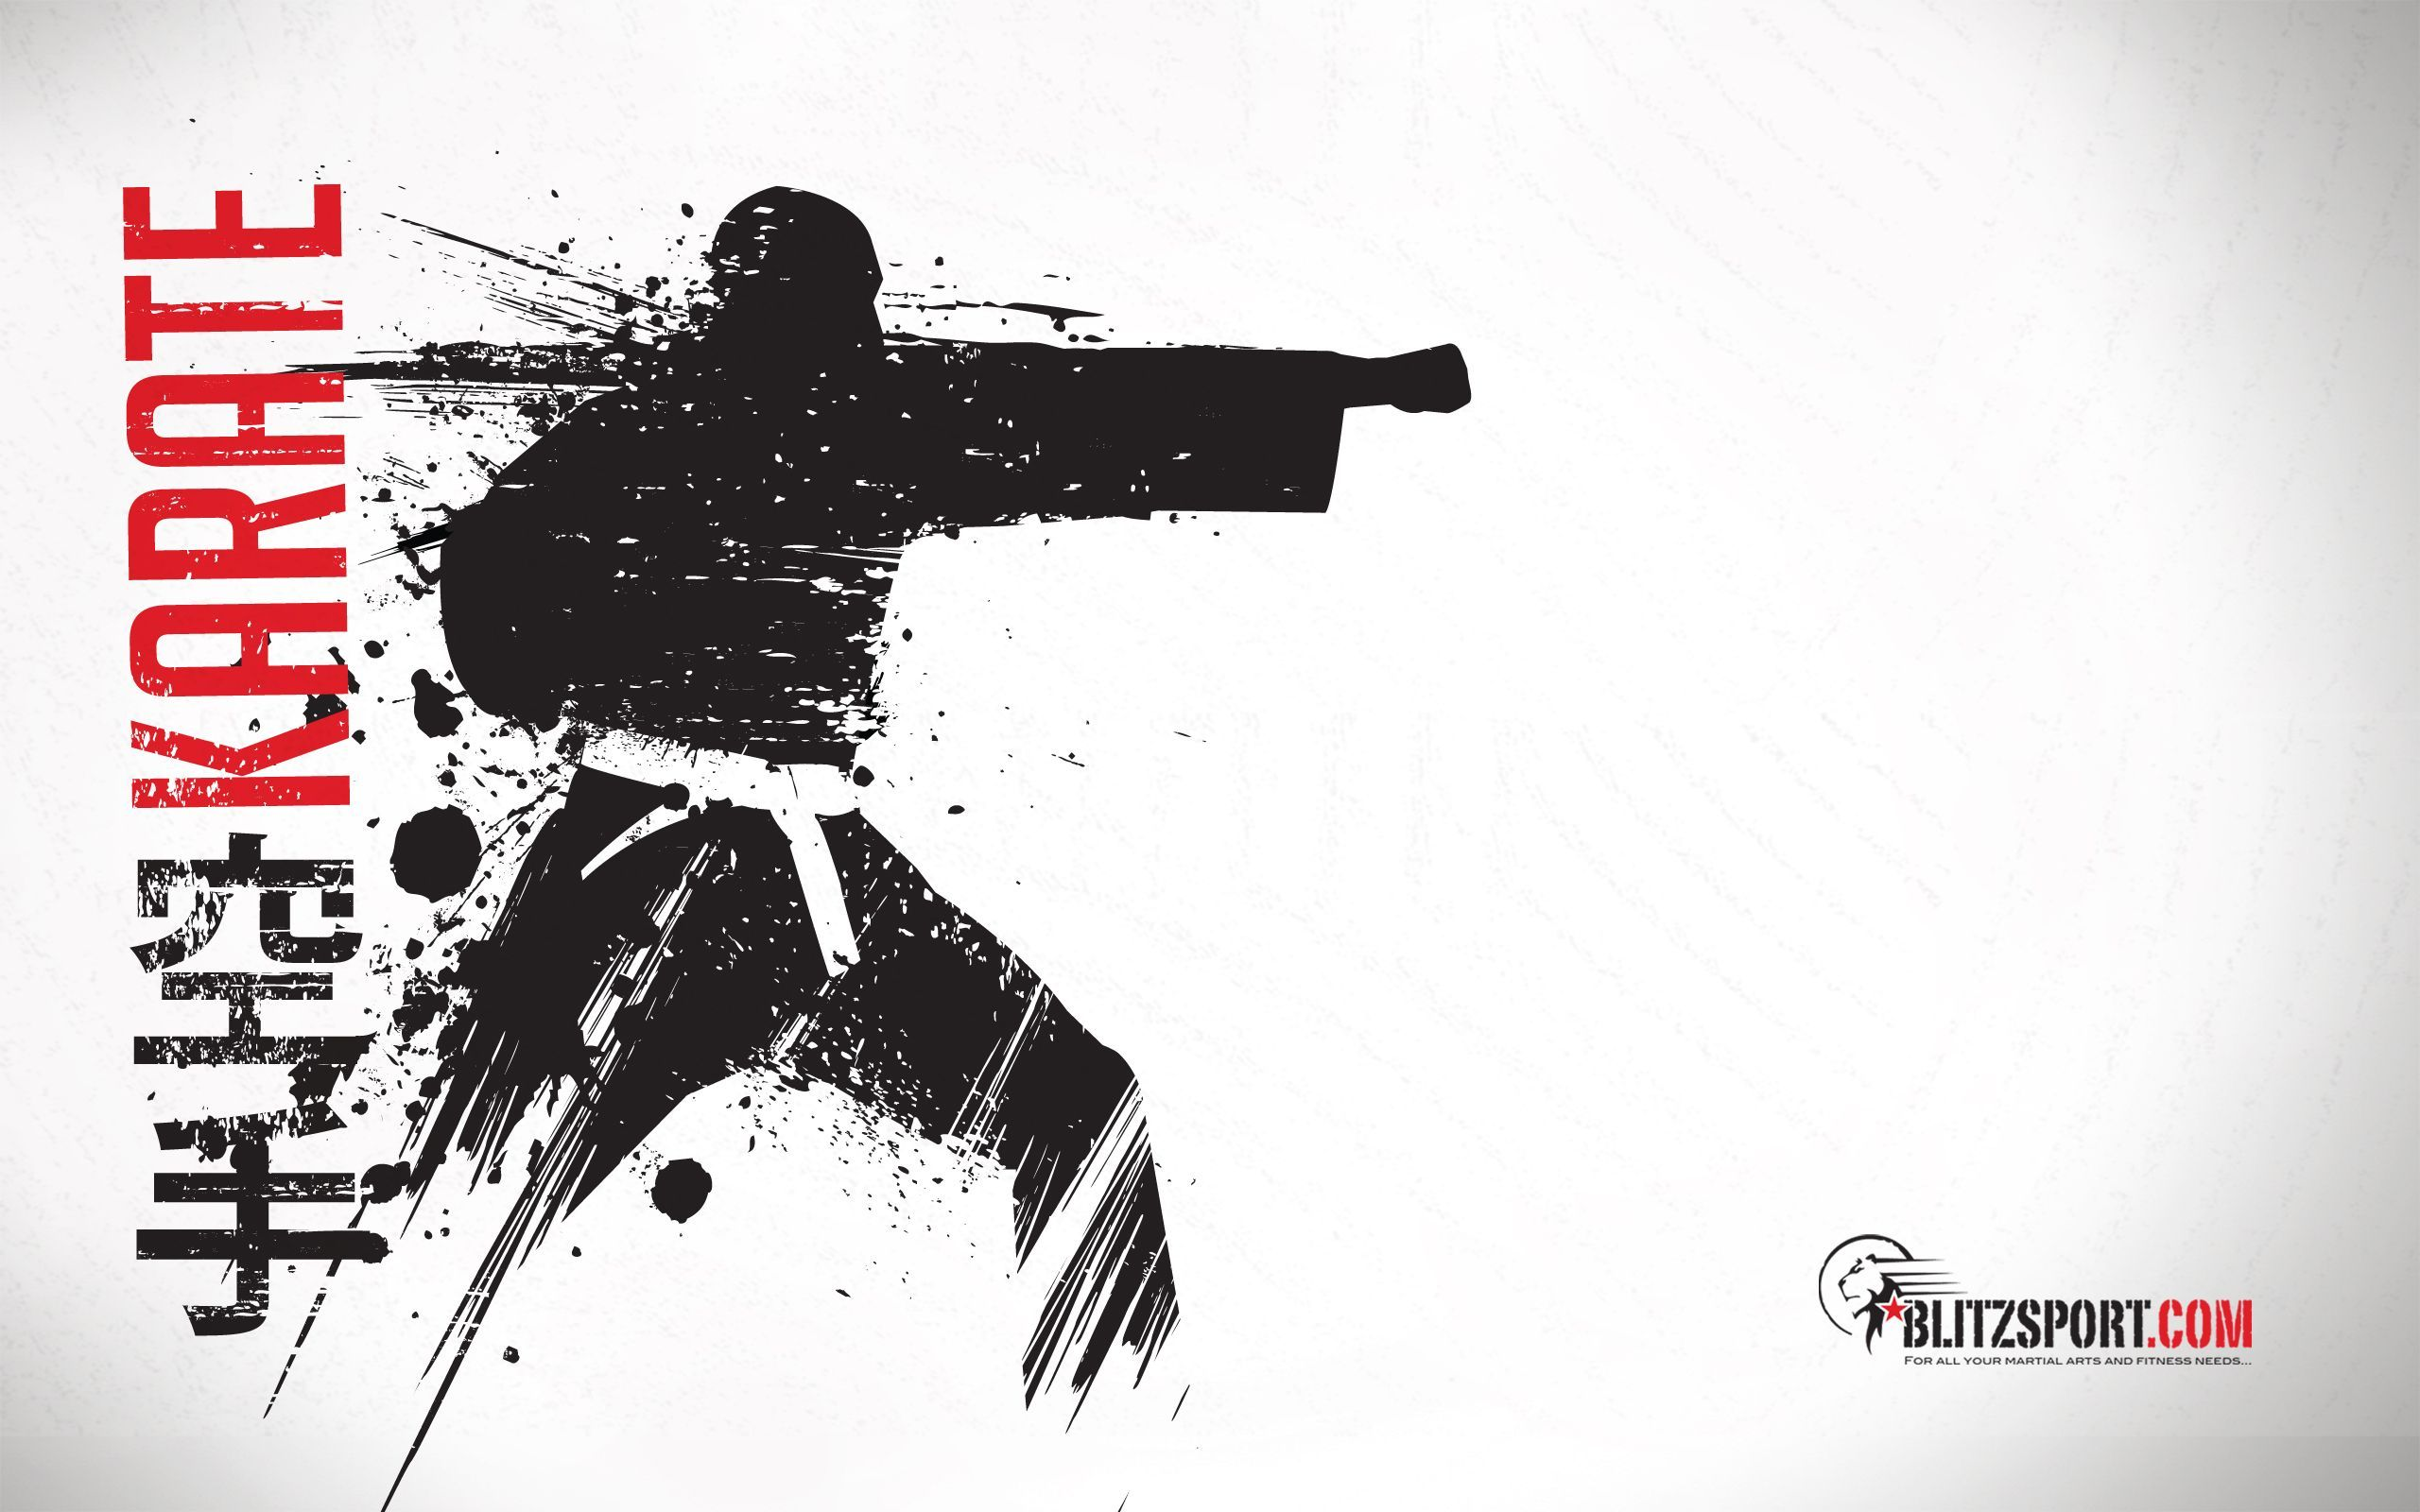 2560x1600 Blitz Judo Wallpaper (1920 x 1440) | T-Shirt Ideas | Pinterest ...